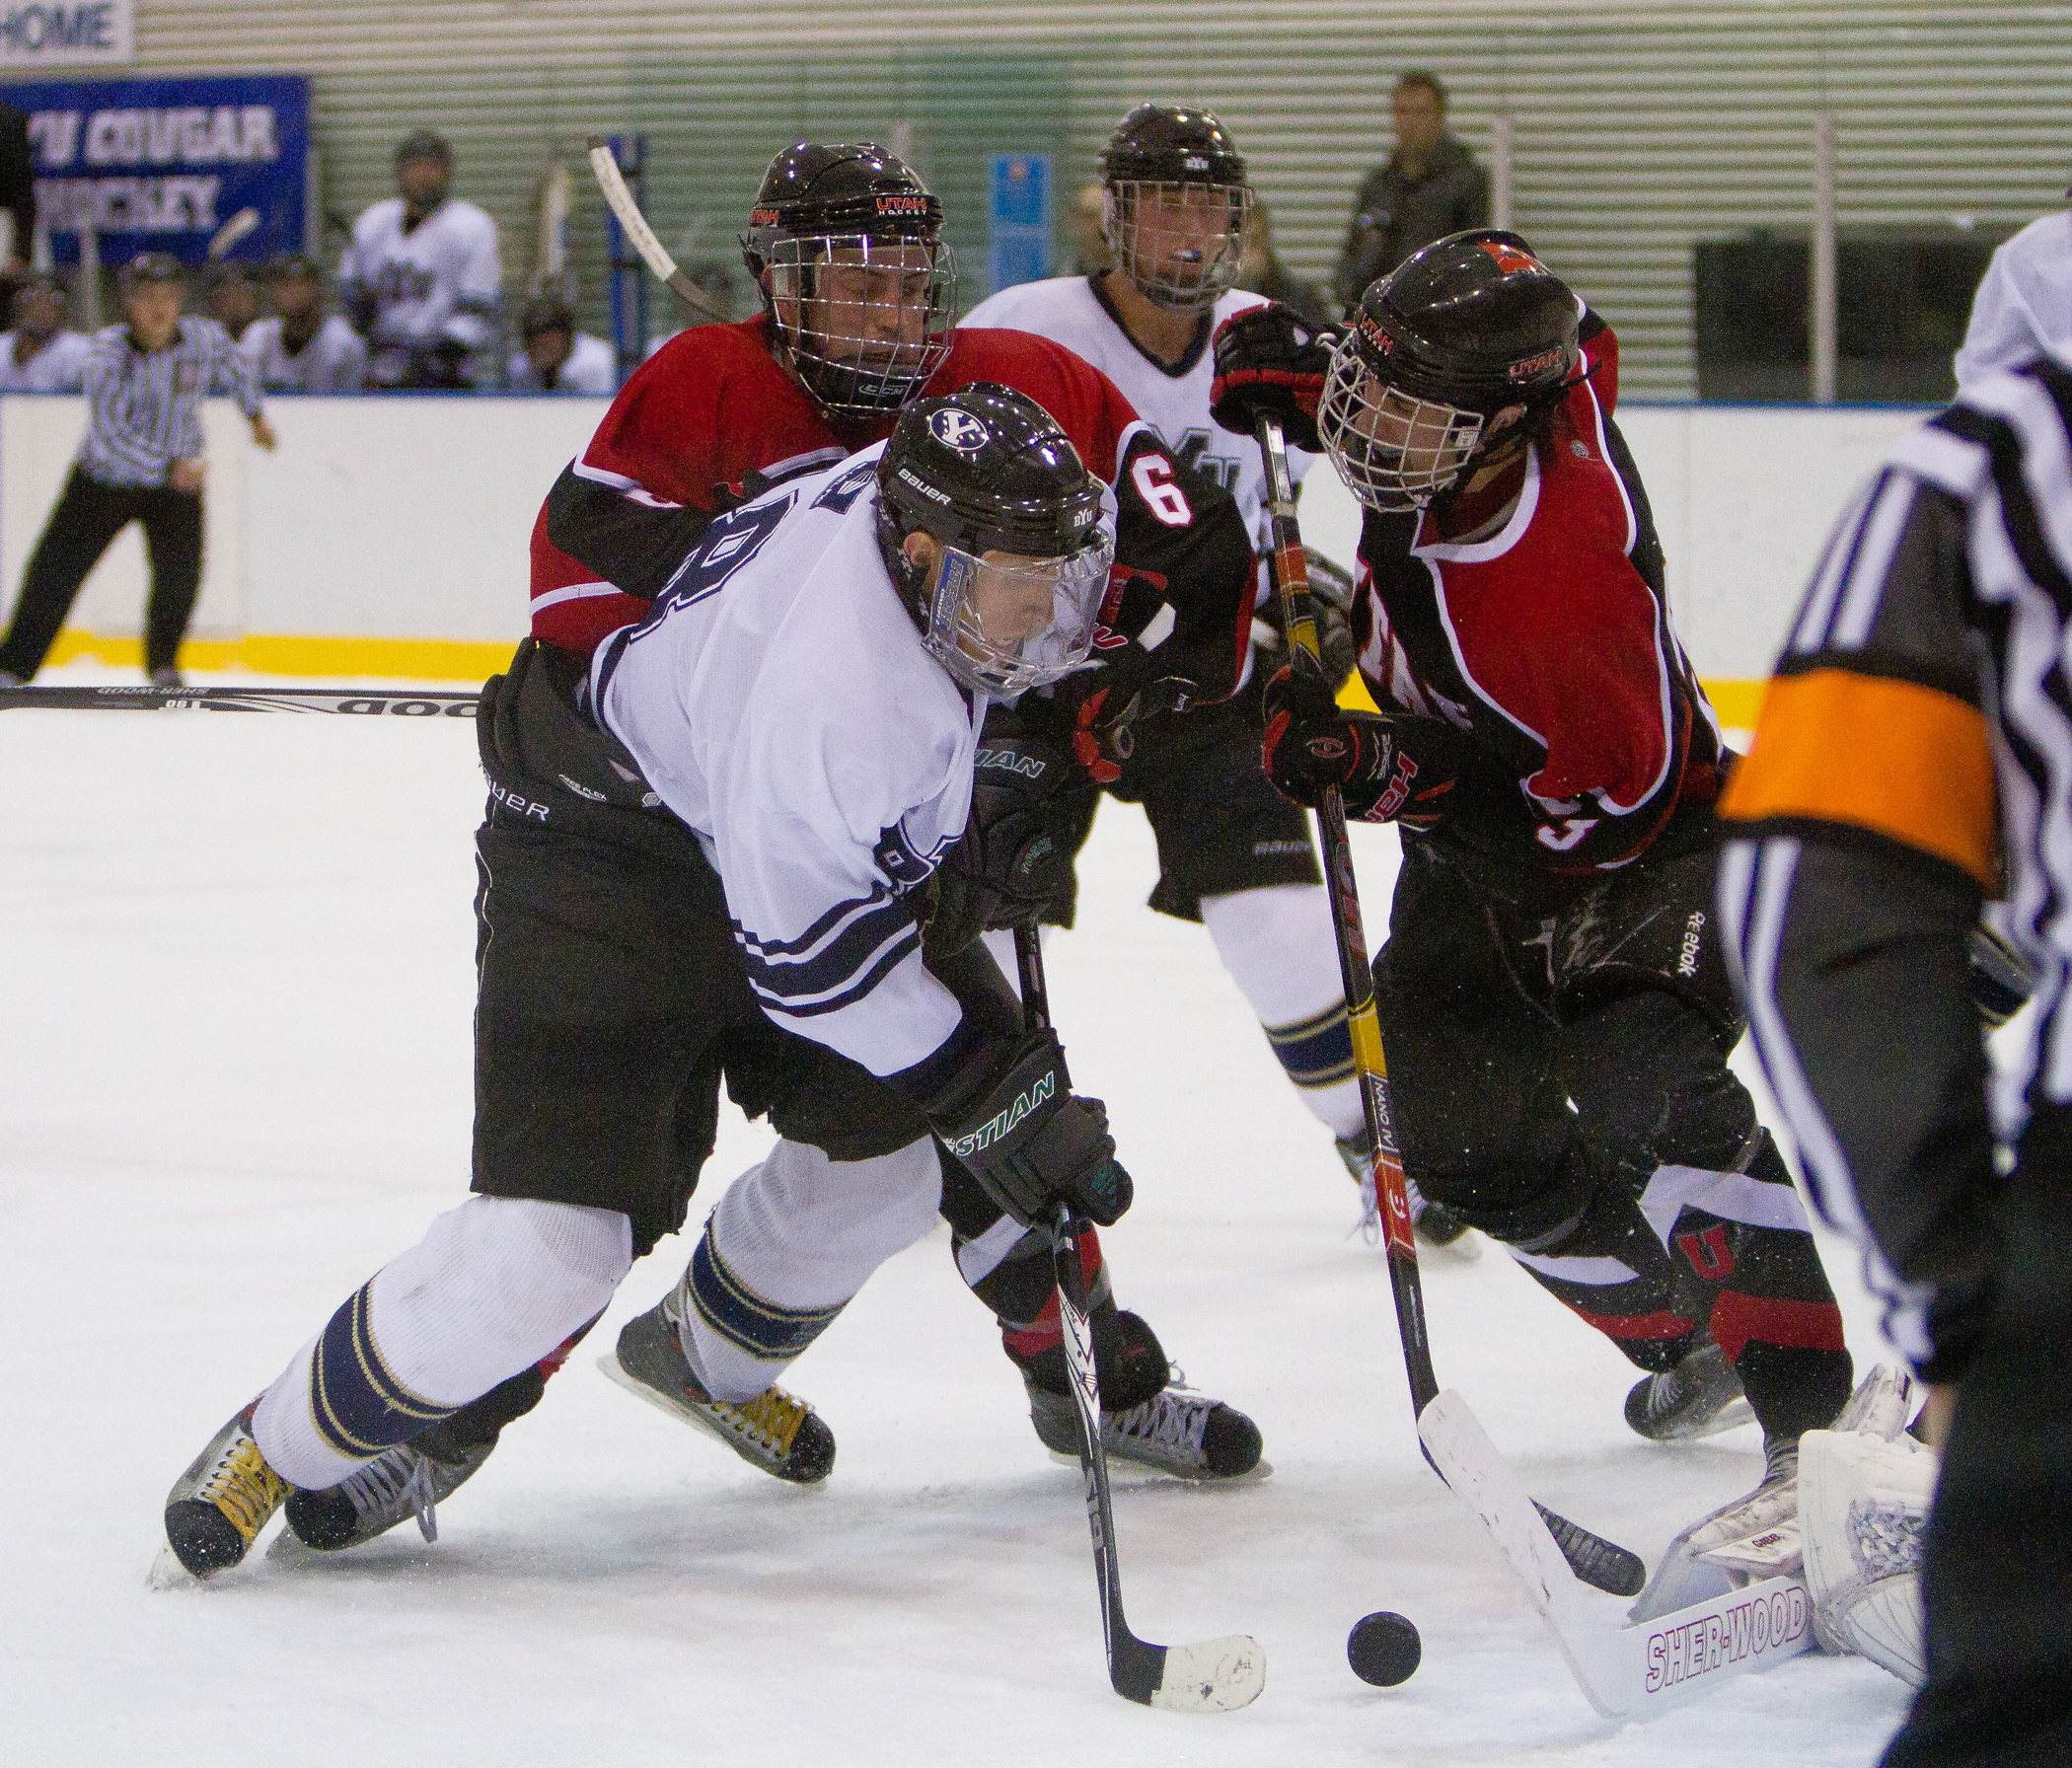 A BYU forward struggles for the puck against two Utah defenders in a game last season at Seven Peaks.